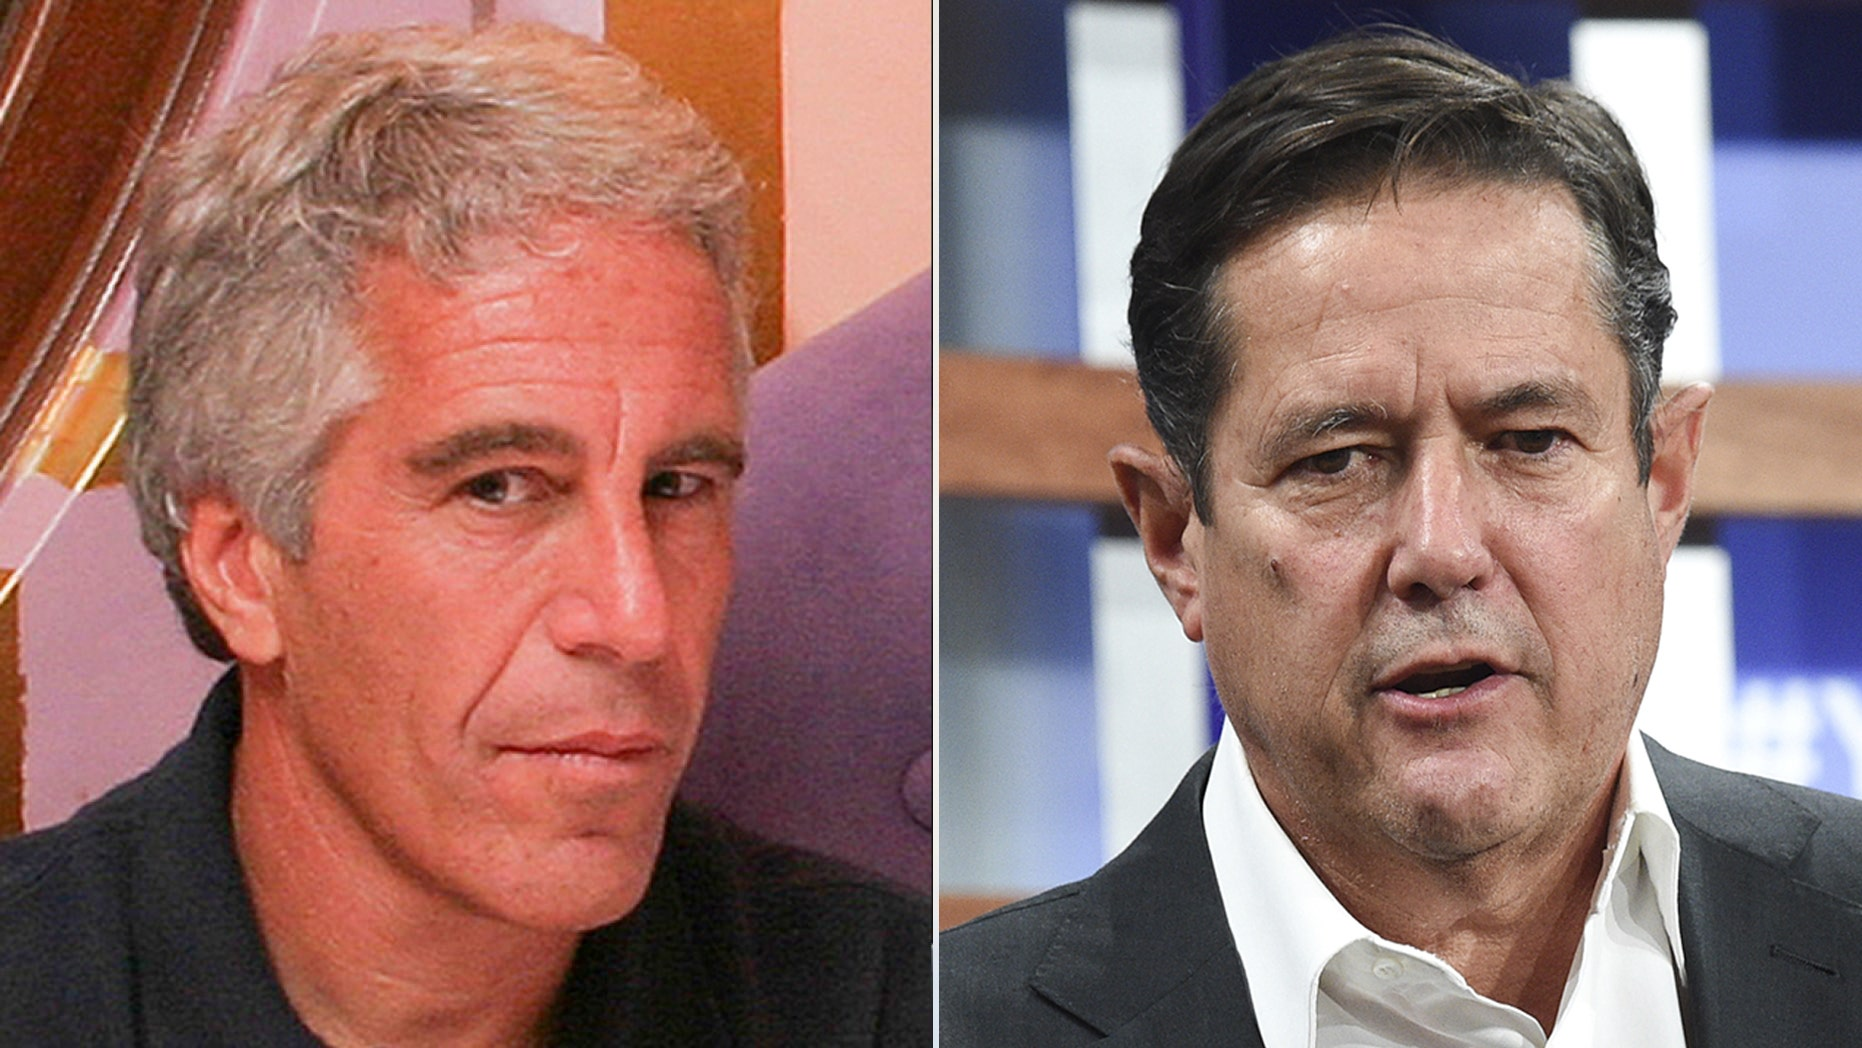 Barclays CEO `deeply regrets` Epstein relationship